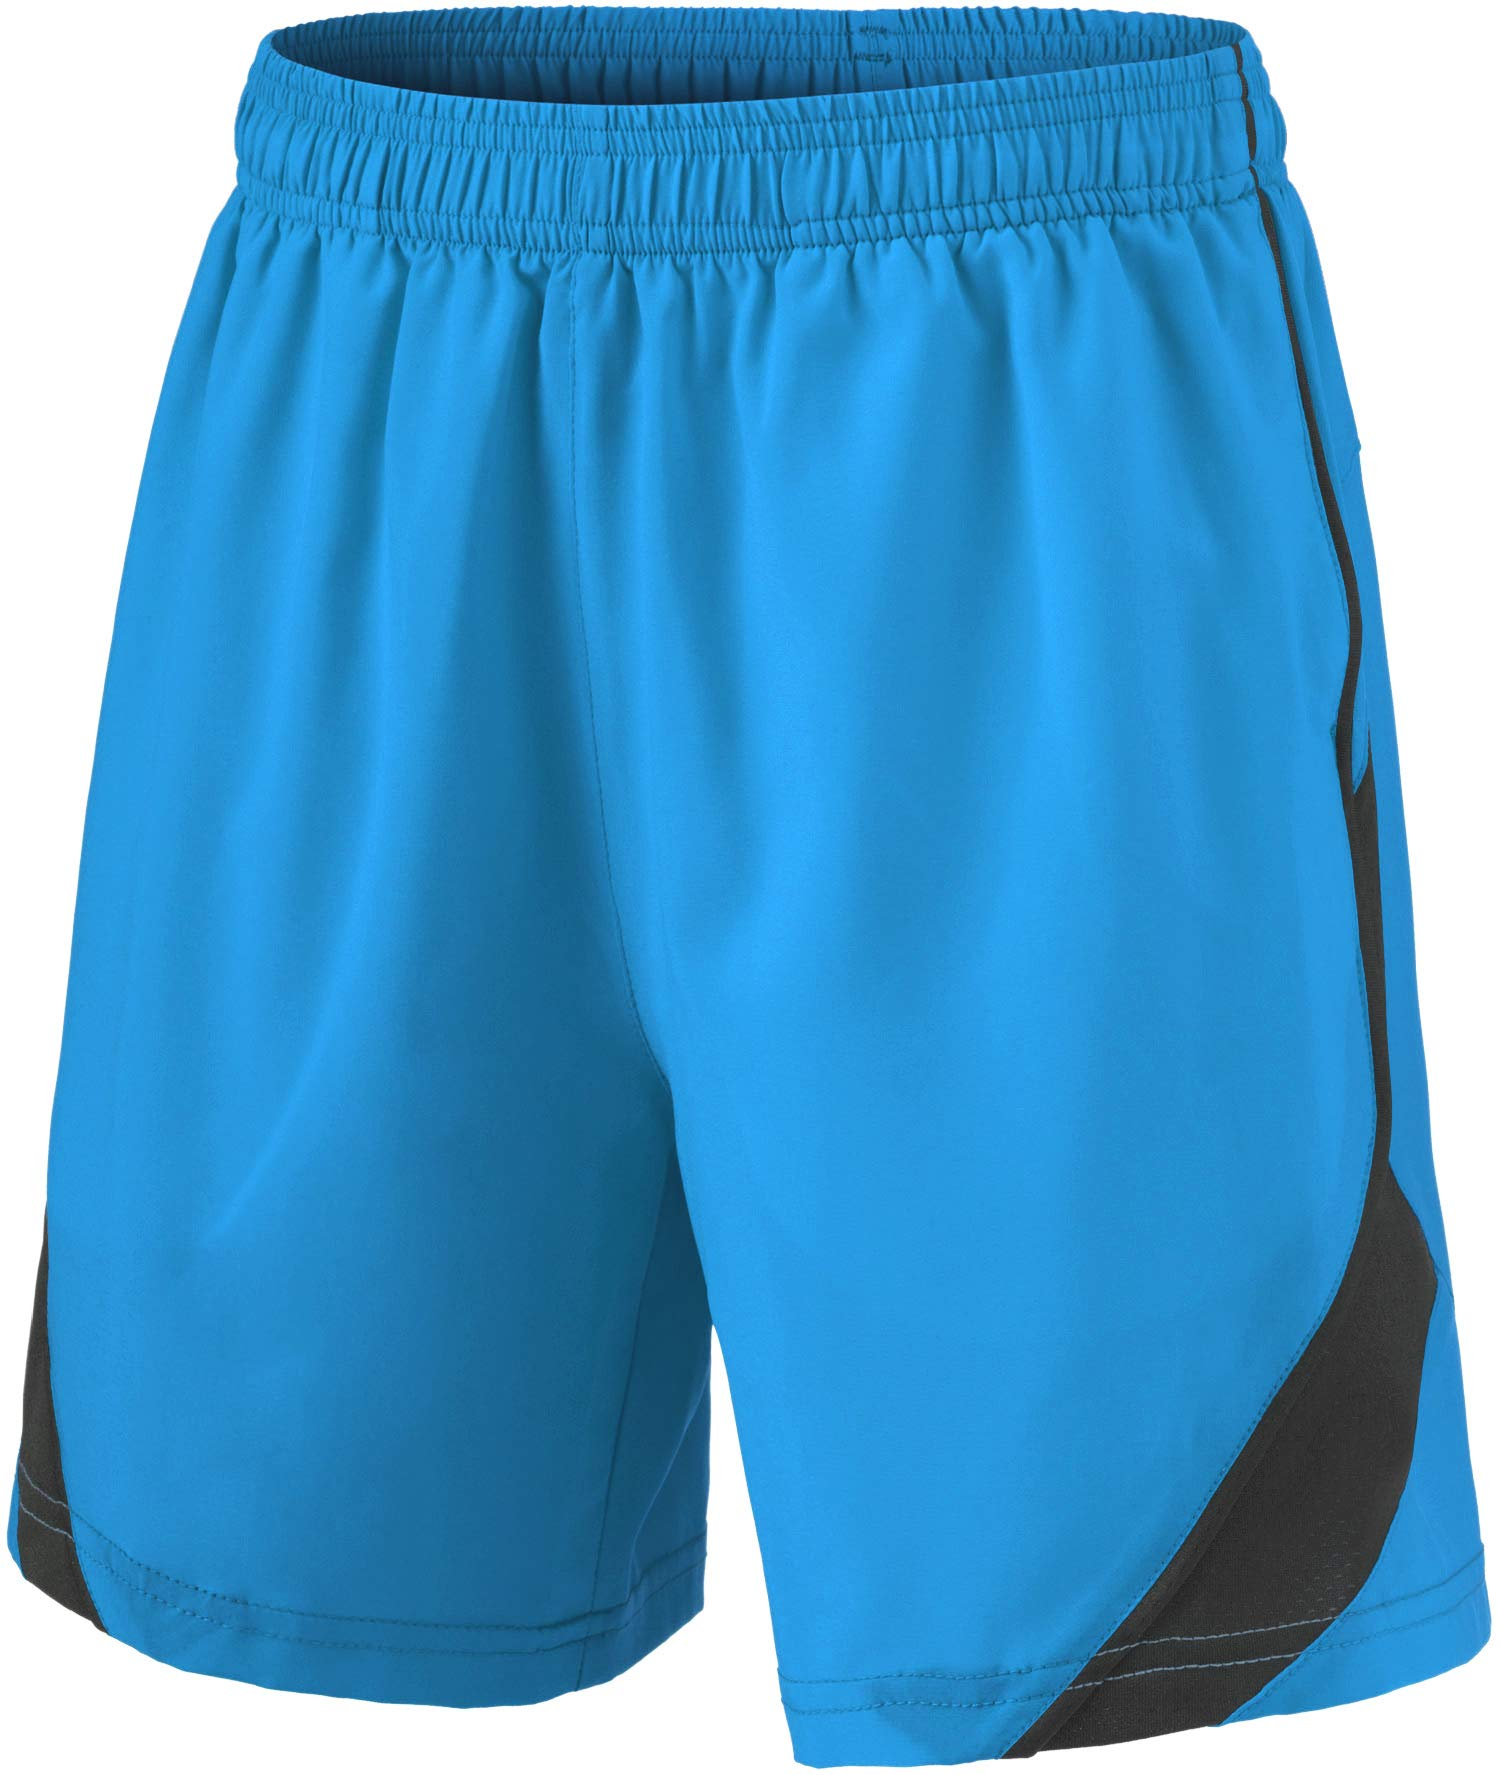 TSLA Boy's Active Shorts Sports Performance Youth HyperDri II w Pockets, Stretch Pace(kbh76) - Sky Blue, Youth X-Large by TSLA